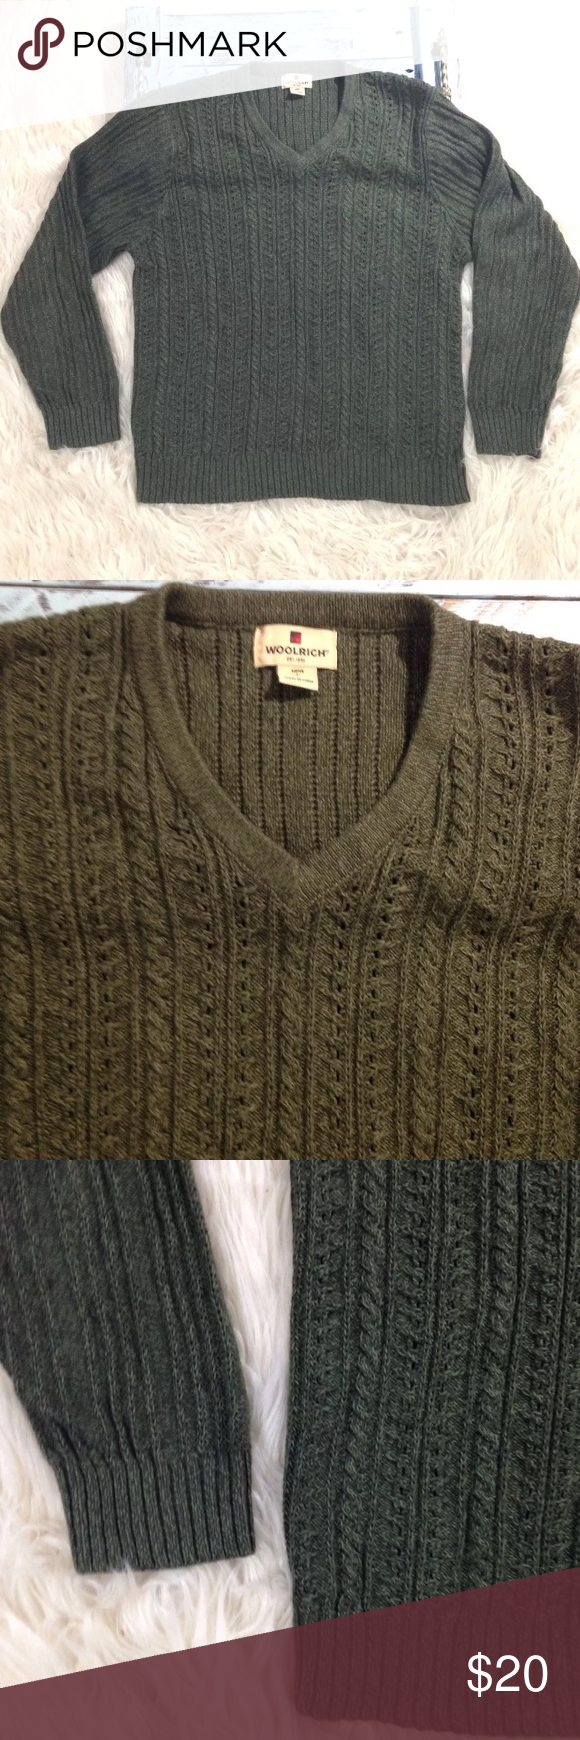 Woolrich Wool Blend Cable-knit Sweater Army Green | Army green ...